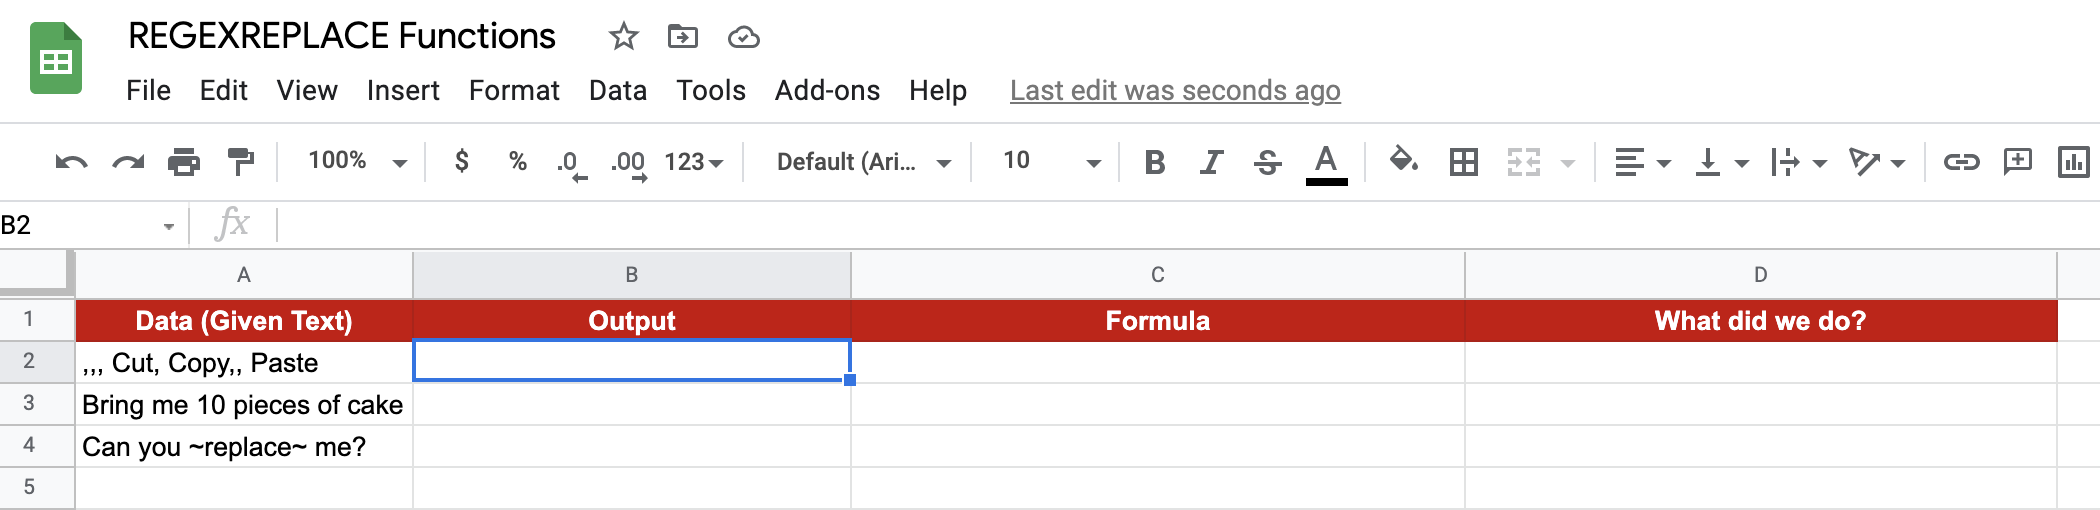 REGEXREPLACE Function in Google Sheets